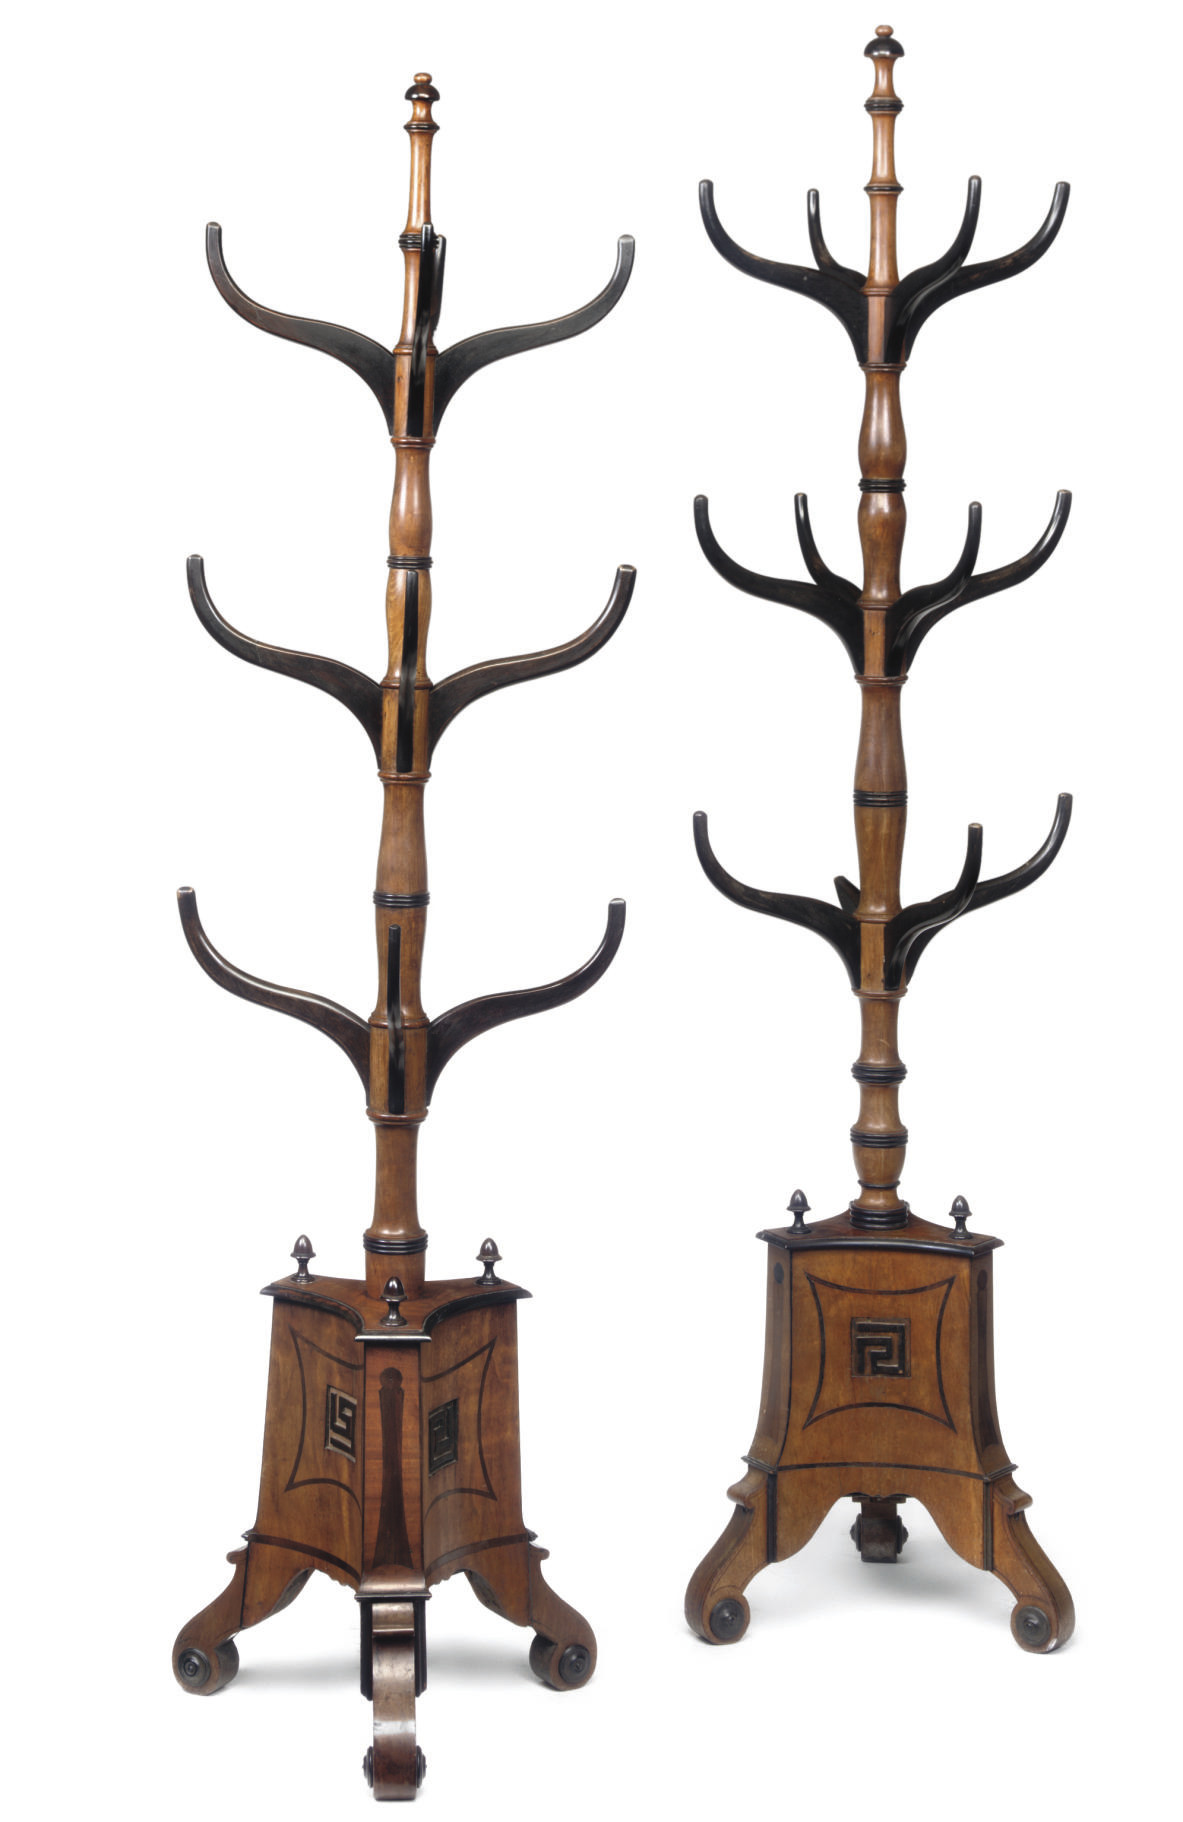 A NEAR PAIR OF REGENCY MAHOGANY AND EBONISED HALL STANDS